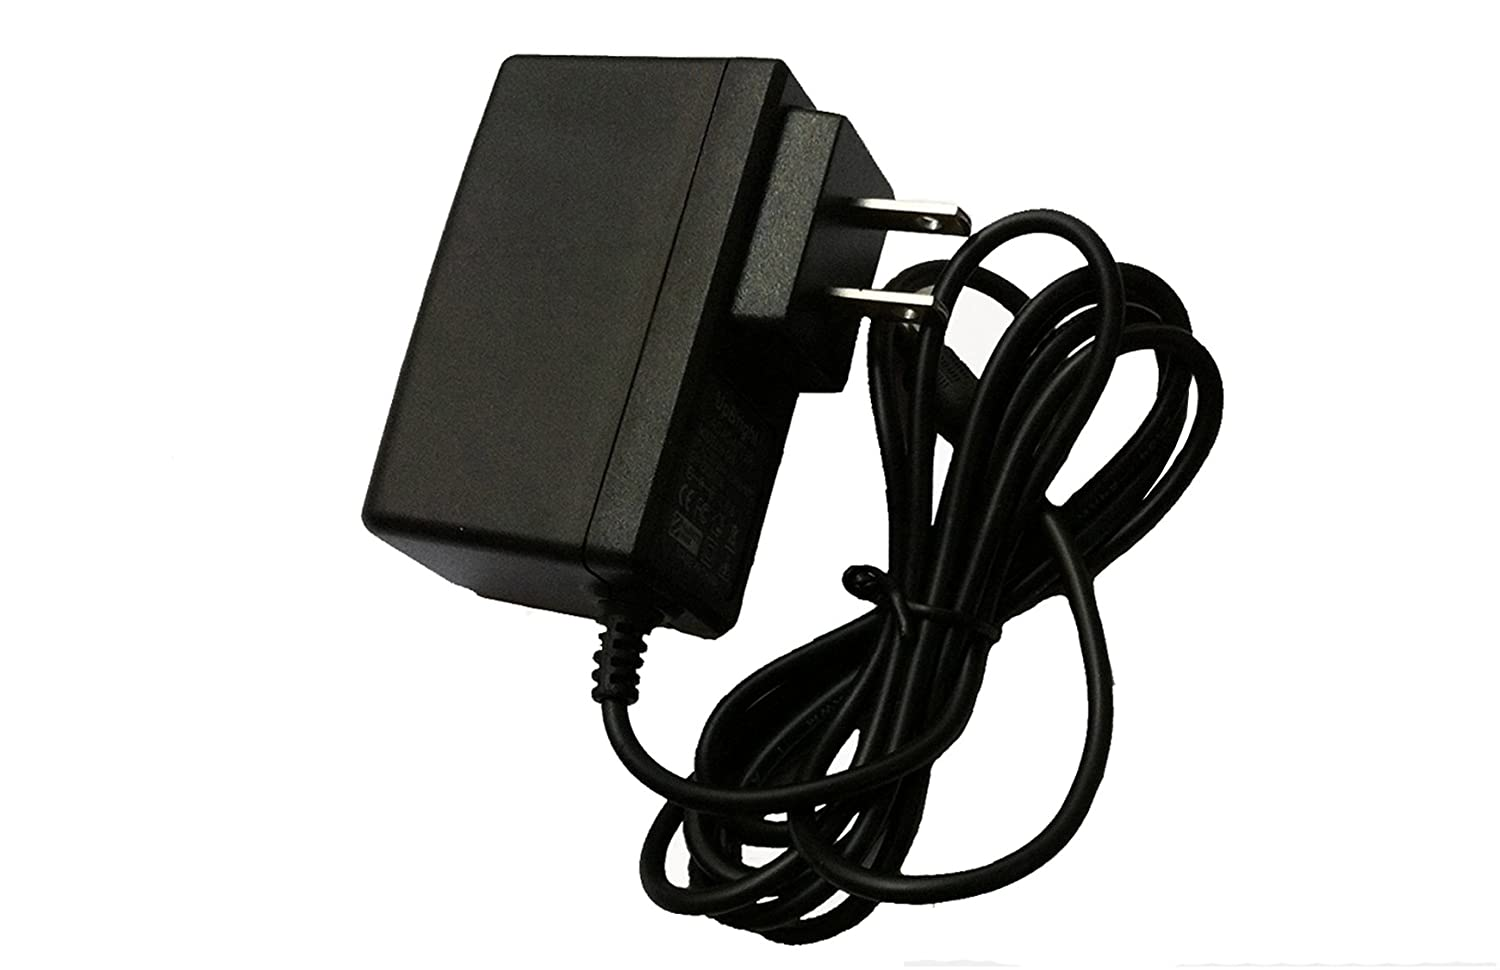 UpBright 5V AC Adapter for Elmo MO-1 M0-1 1337-1 1337-2 1337-3 1337-164 1336-12 MO-1WH MO-1B 5ZA0000191 Document Camera Visual Presenter YHXH-SW0502000U Mach Speed trio Stealth-9 MST9-21 stealth-10 G2